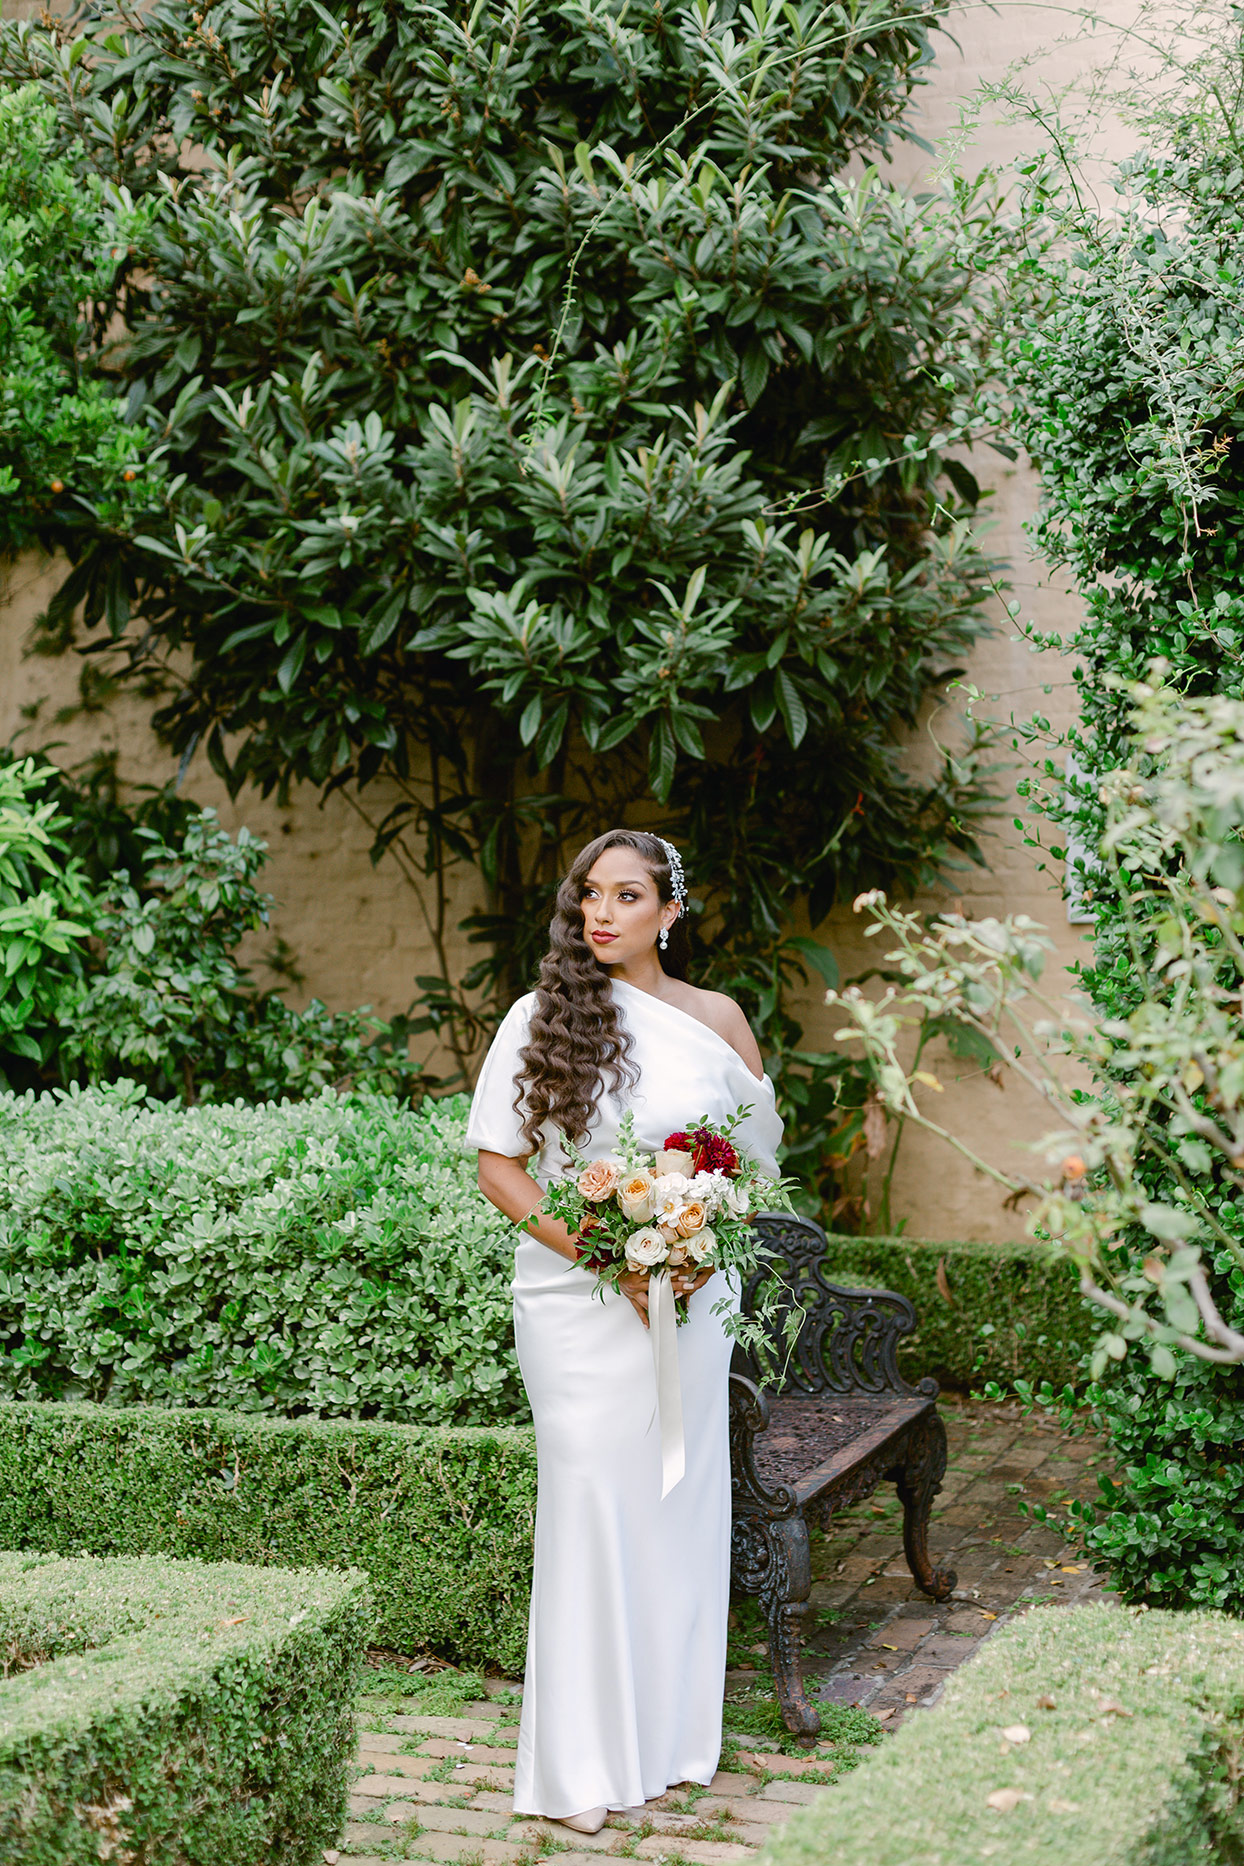 bride standing in garden holding bouquet wearing wedding dress